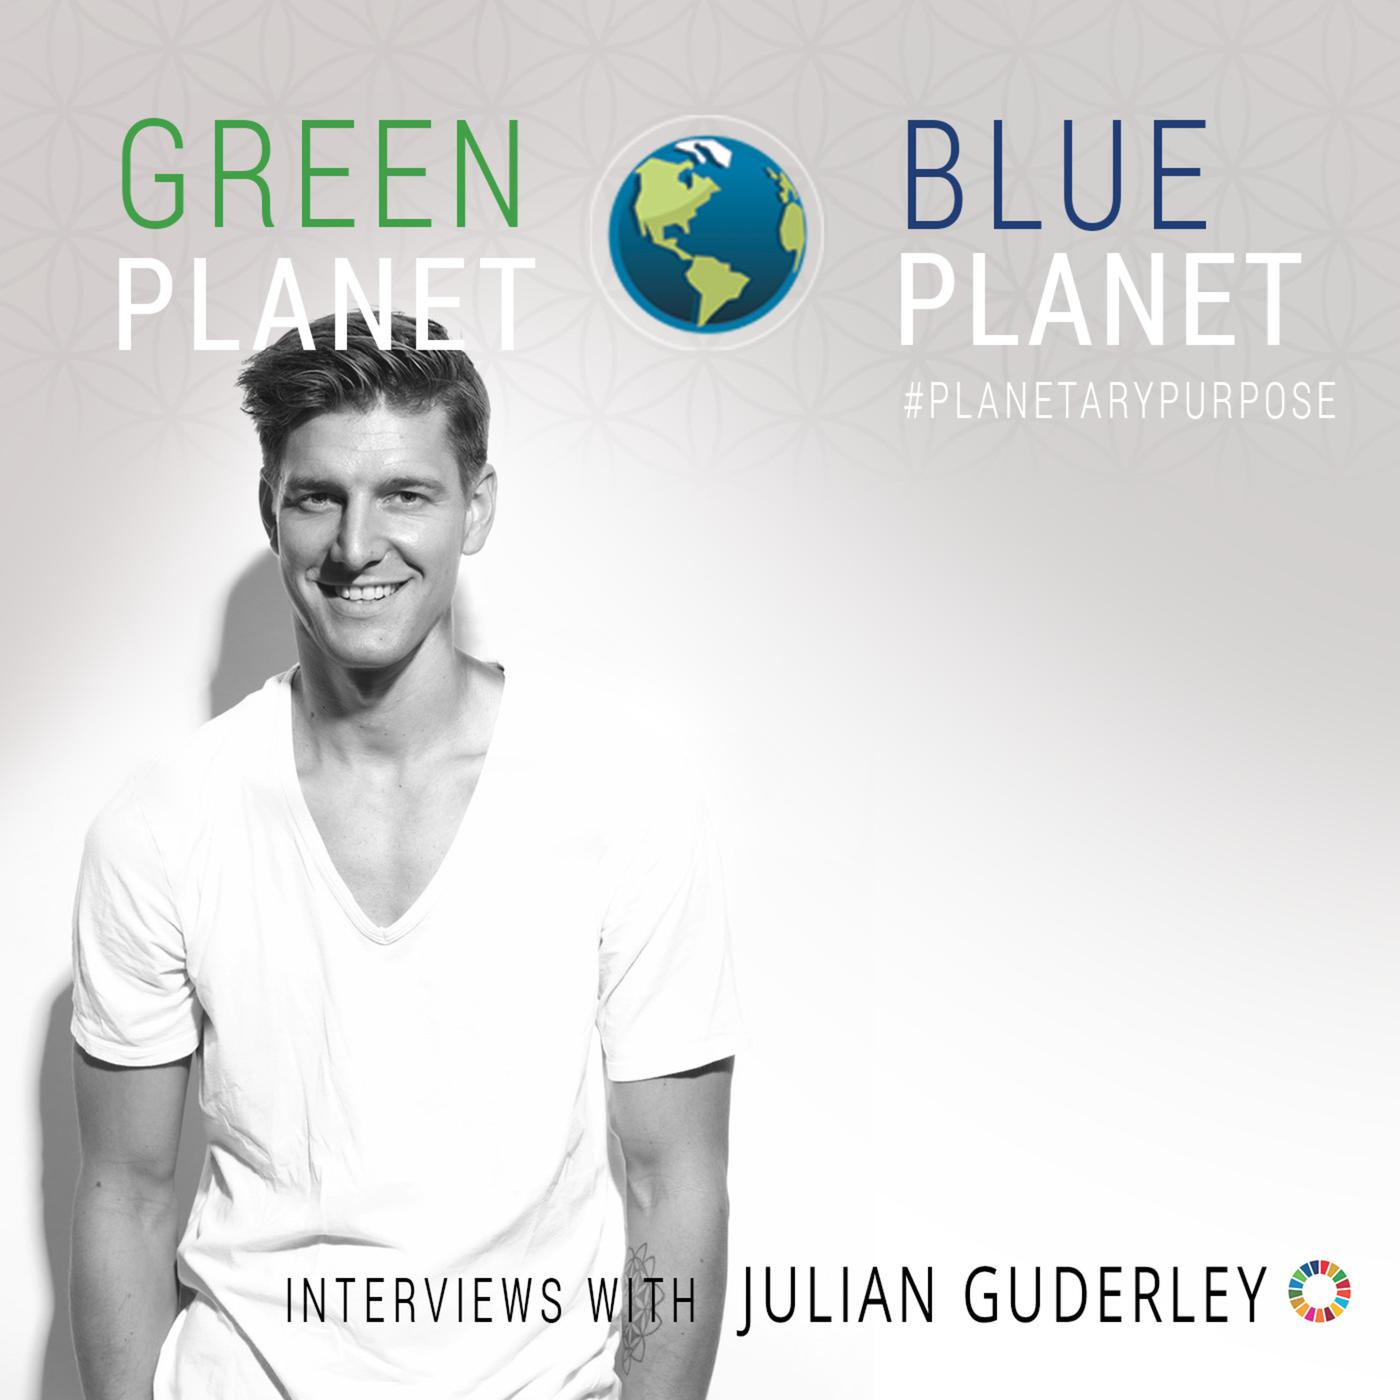 GreenPlanet BluePlanet podcast